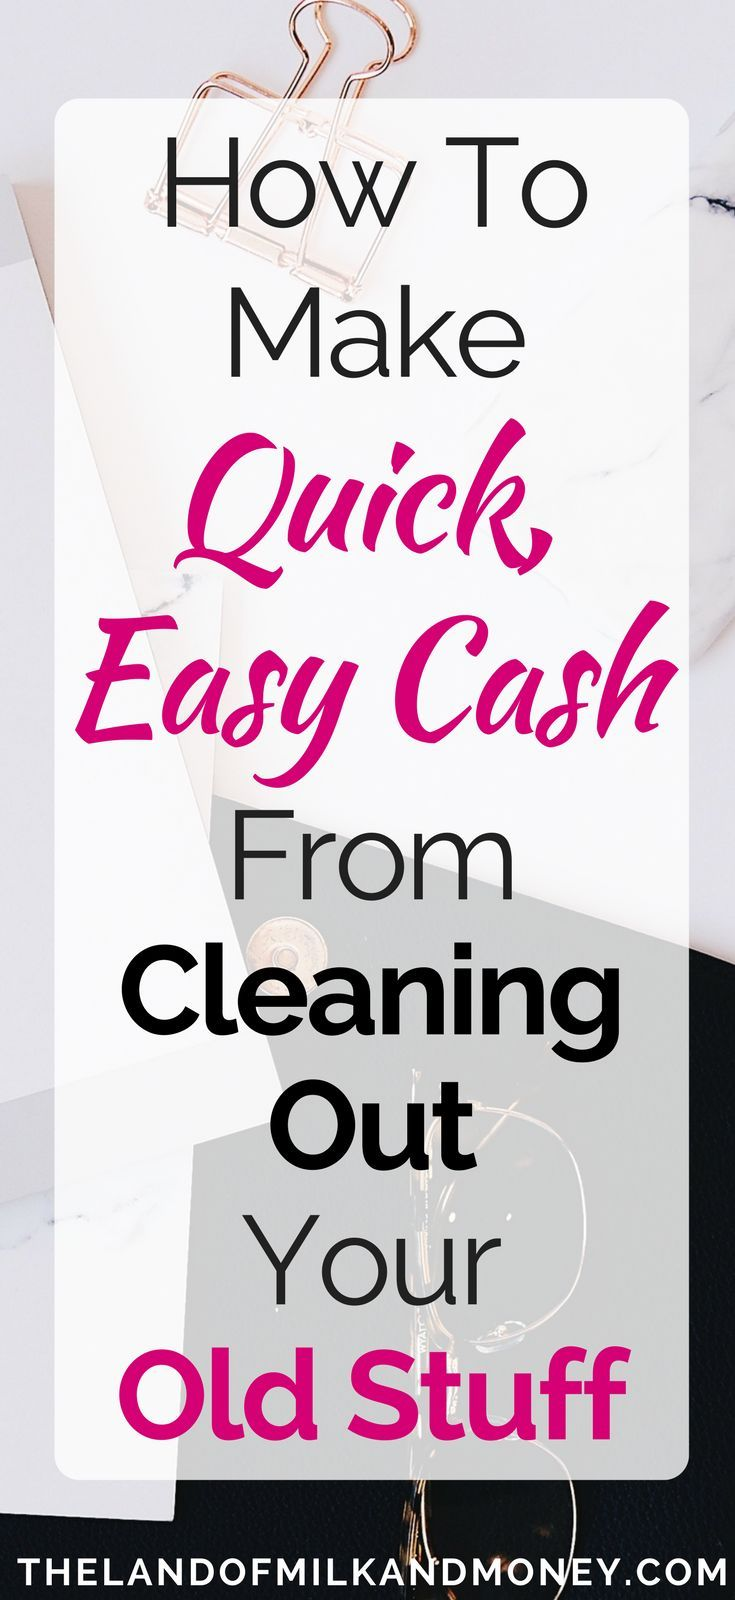 How to Make Great Money Cleaning Out Your Old Stuff   Pinterest ...